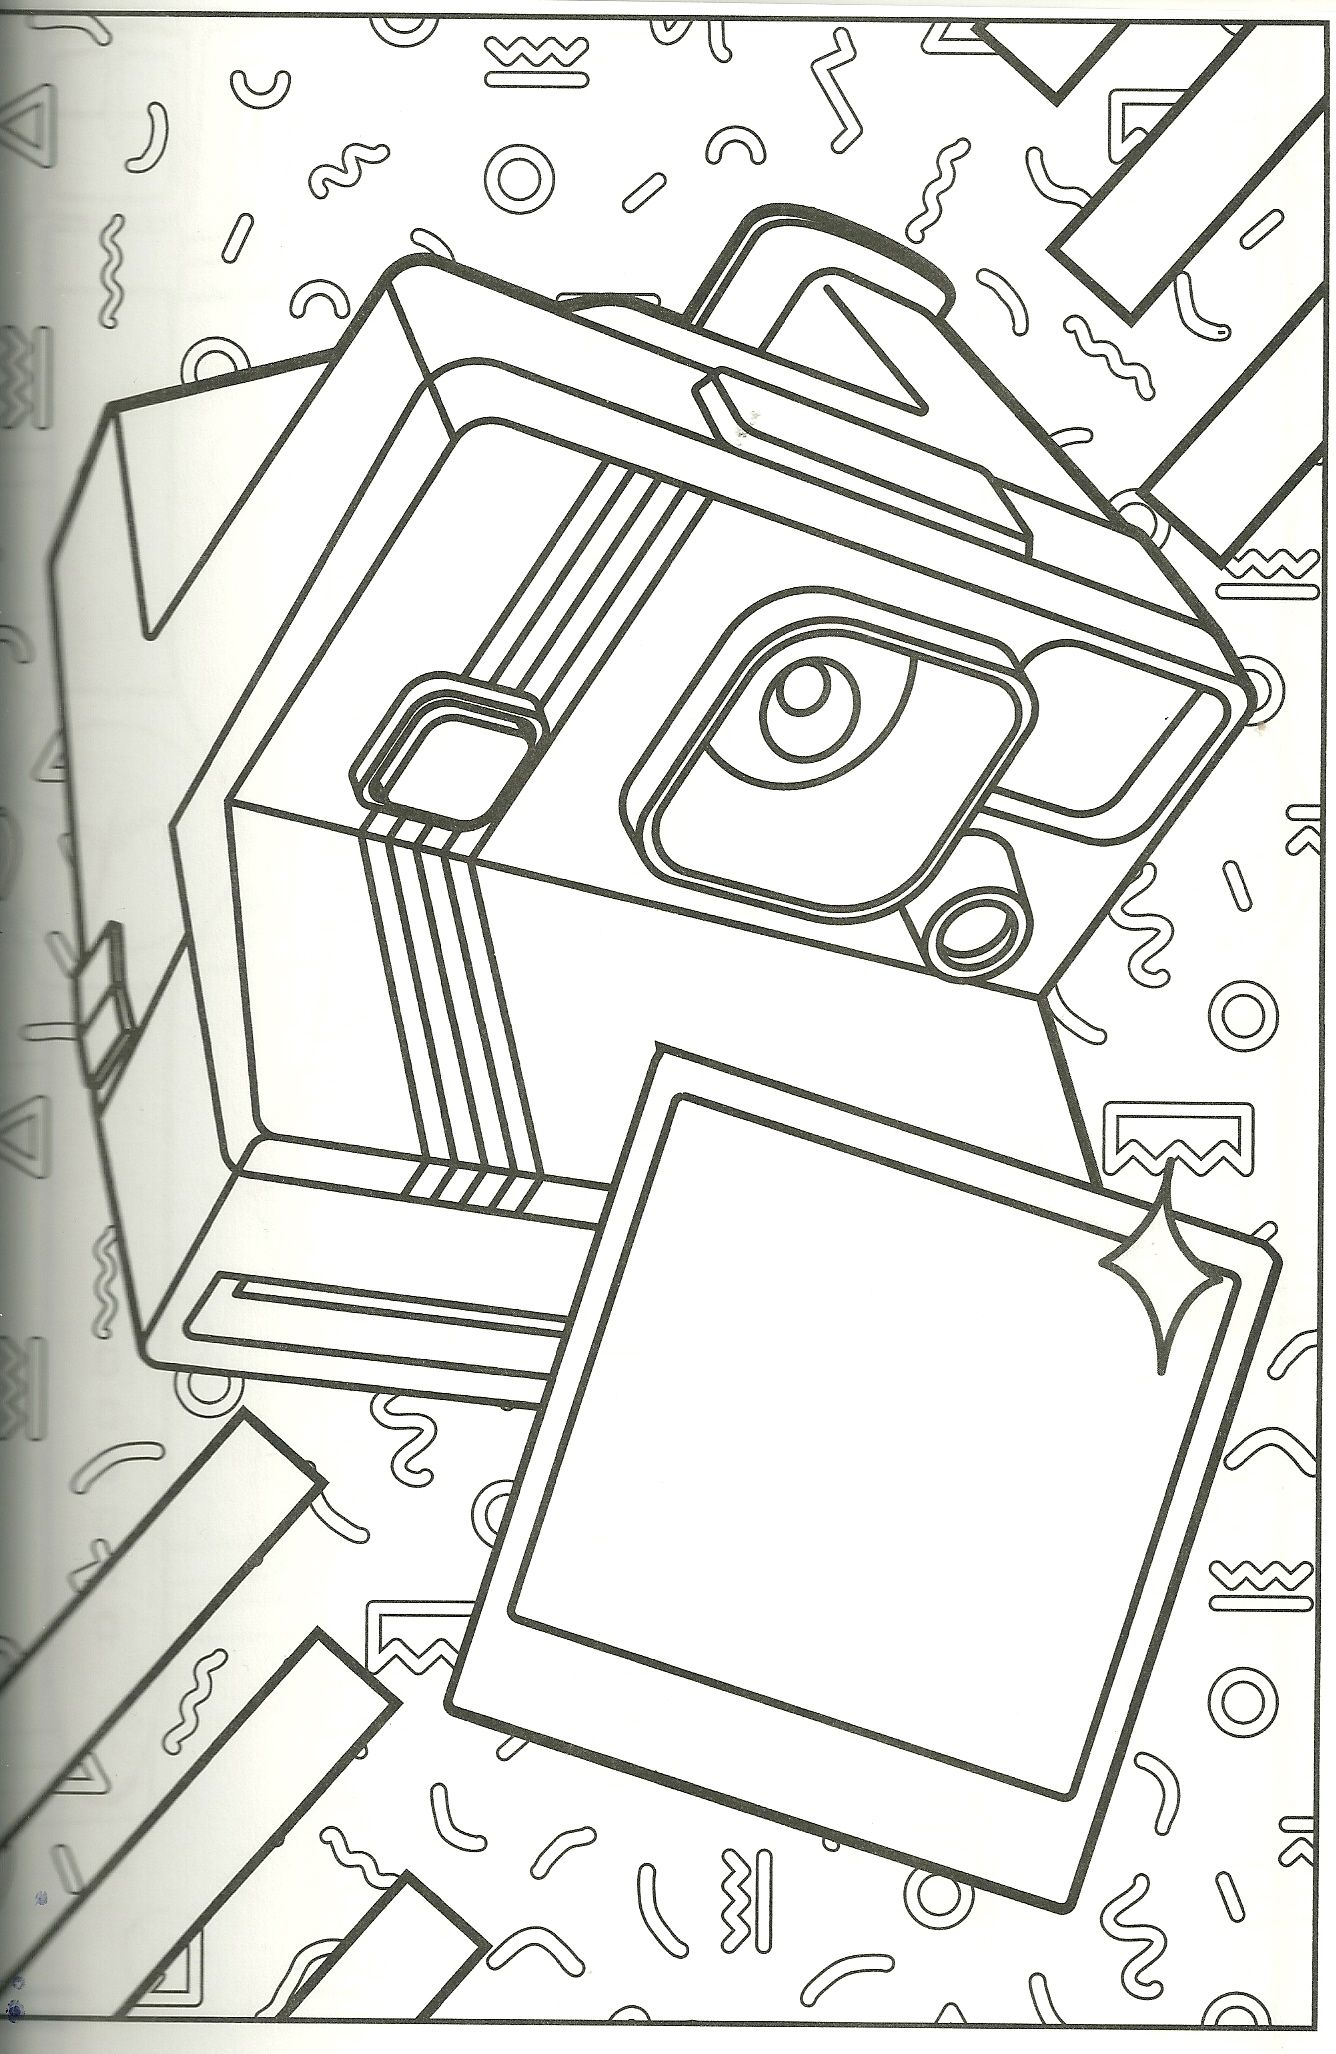 polaroid coloring page i have one of these cameras i use often